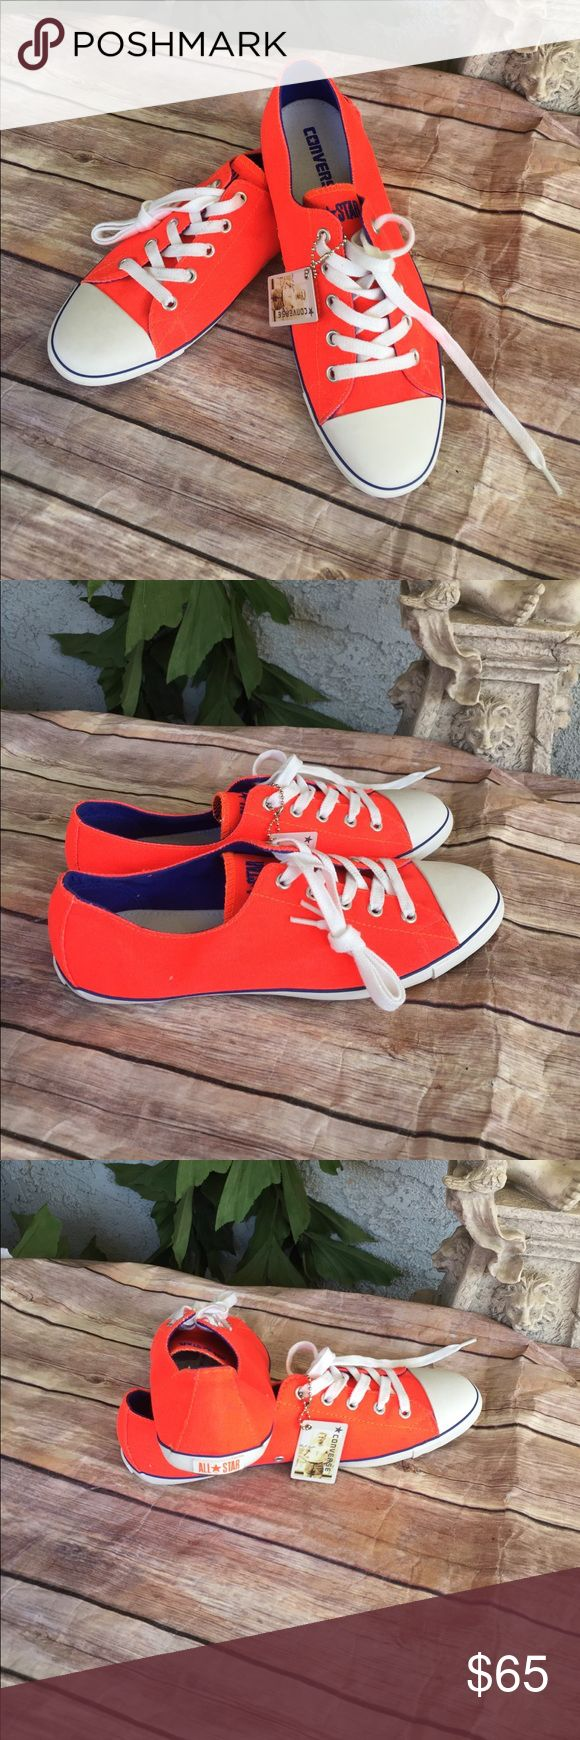 Converse all stars neon orange 81/2 women's New Converse all star size women's 81/2 new no box Converse Shoes Athletic Shoes